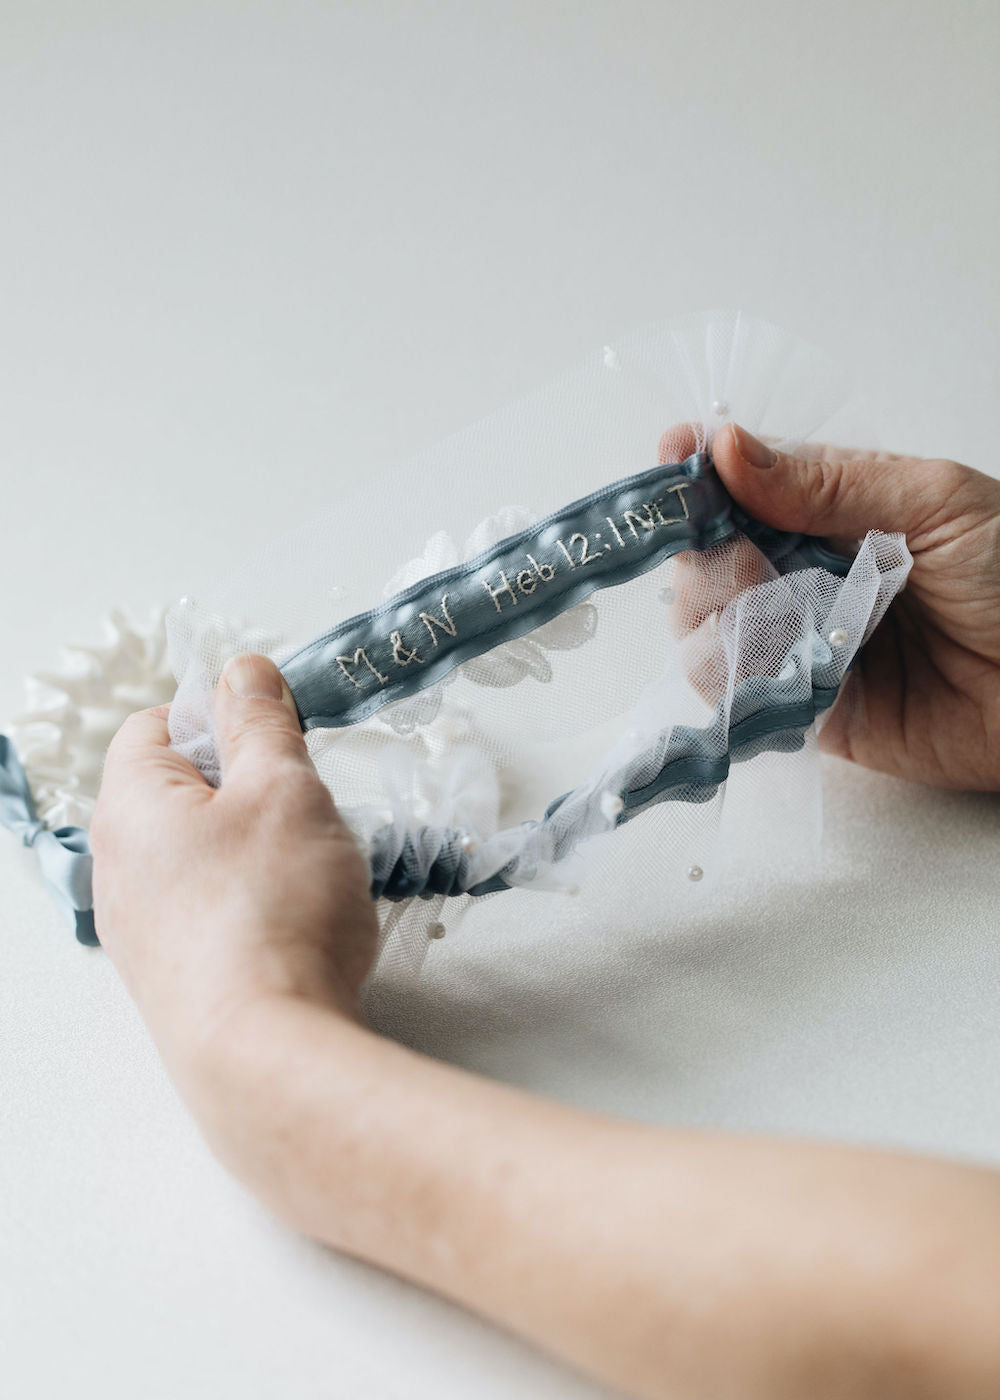 what to do with mother's bridal veil - tulle, lace & pearl wedding garter set with personalized embroidery - handmade heirlooms by The Garter Girl